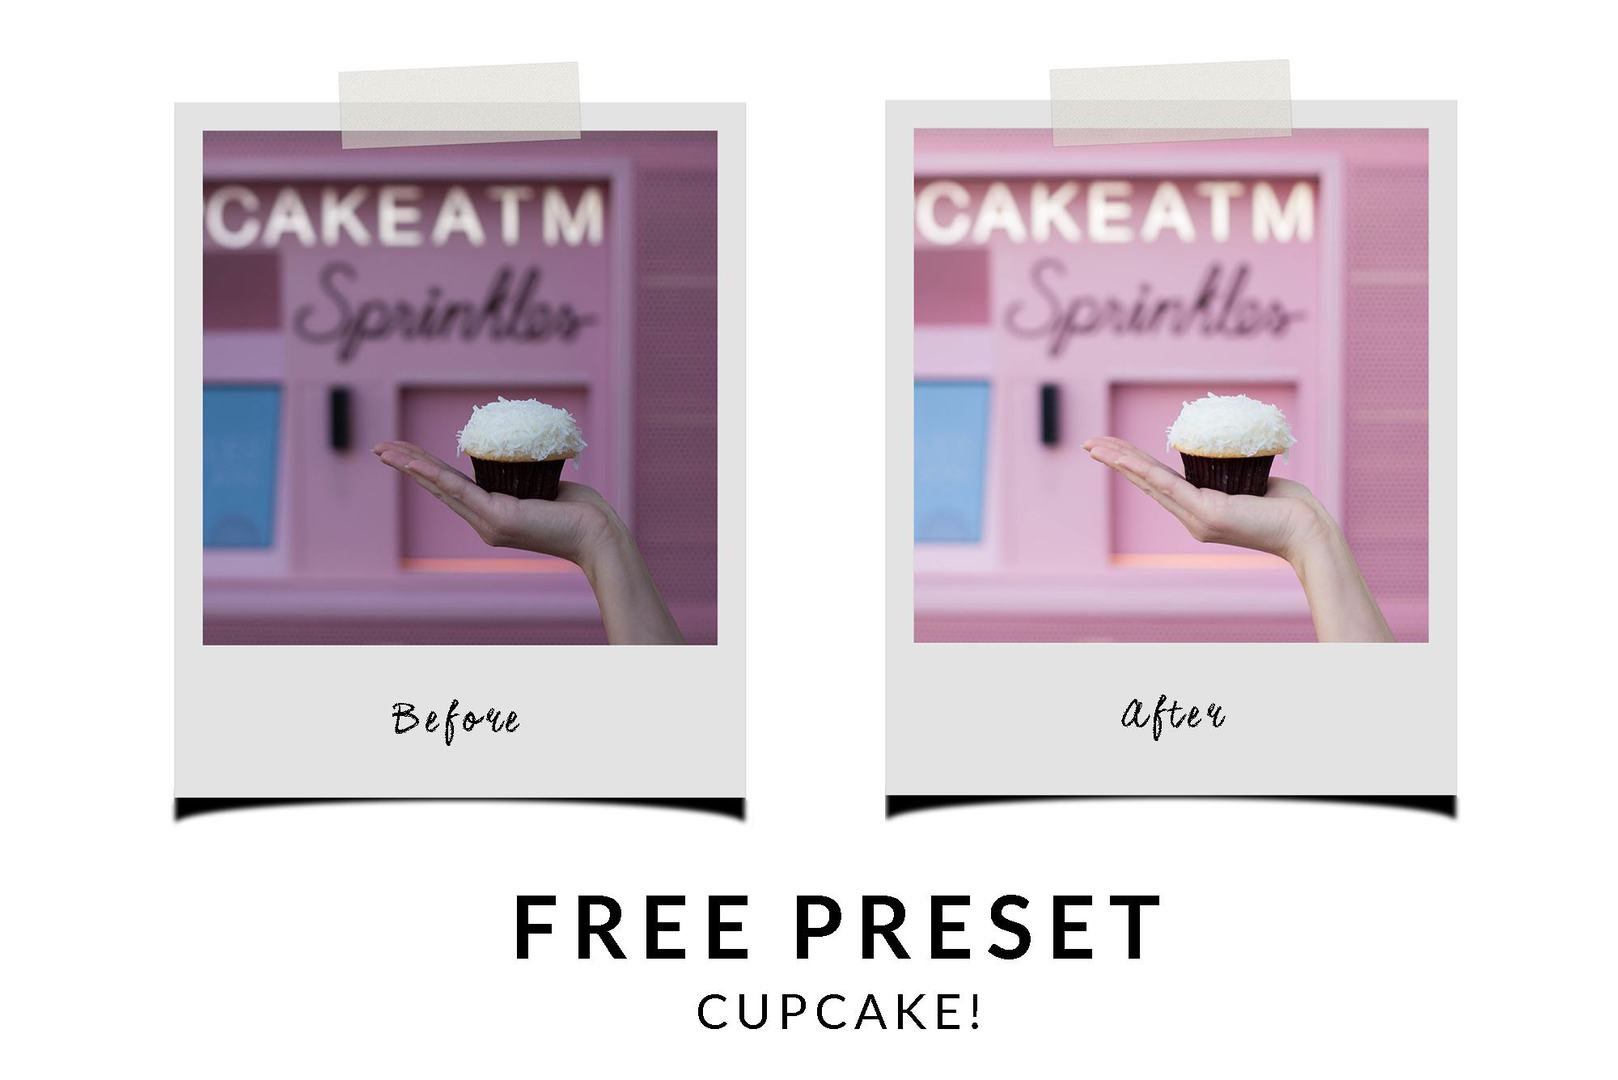 free-lightroom-preset-cupcake